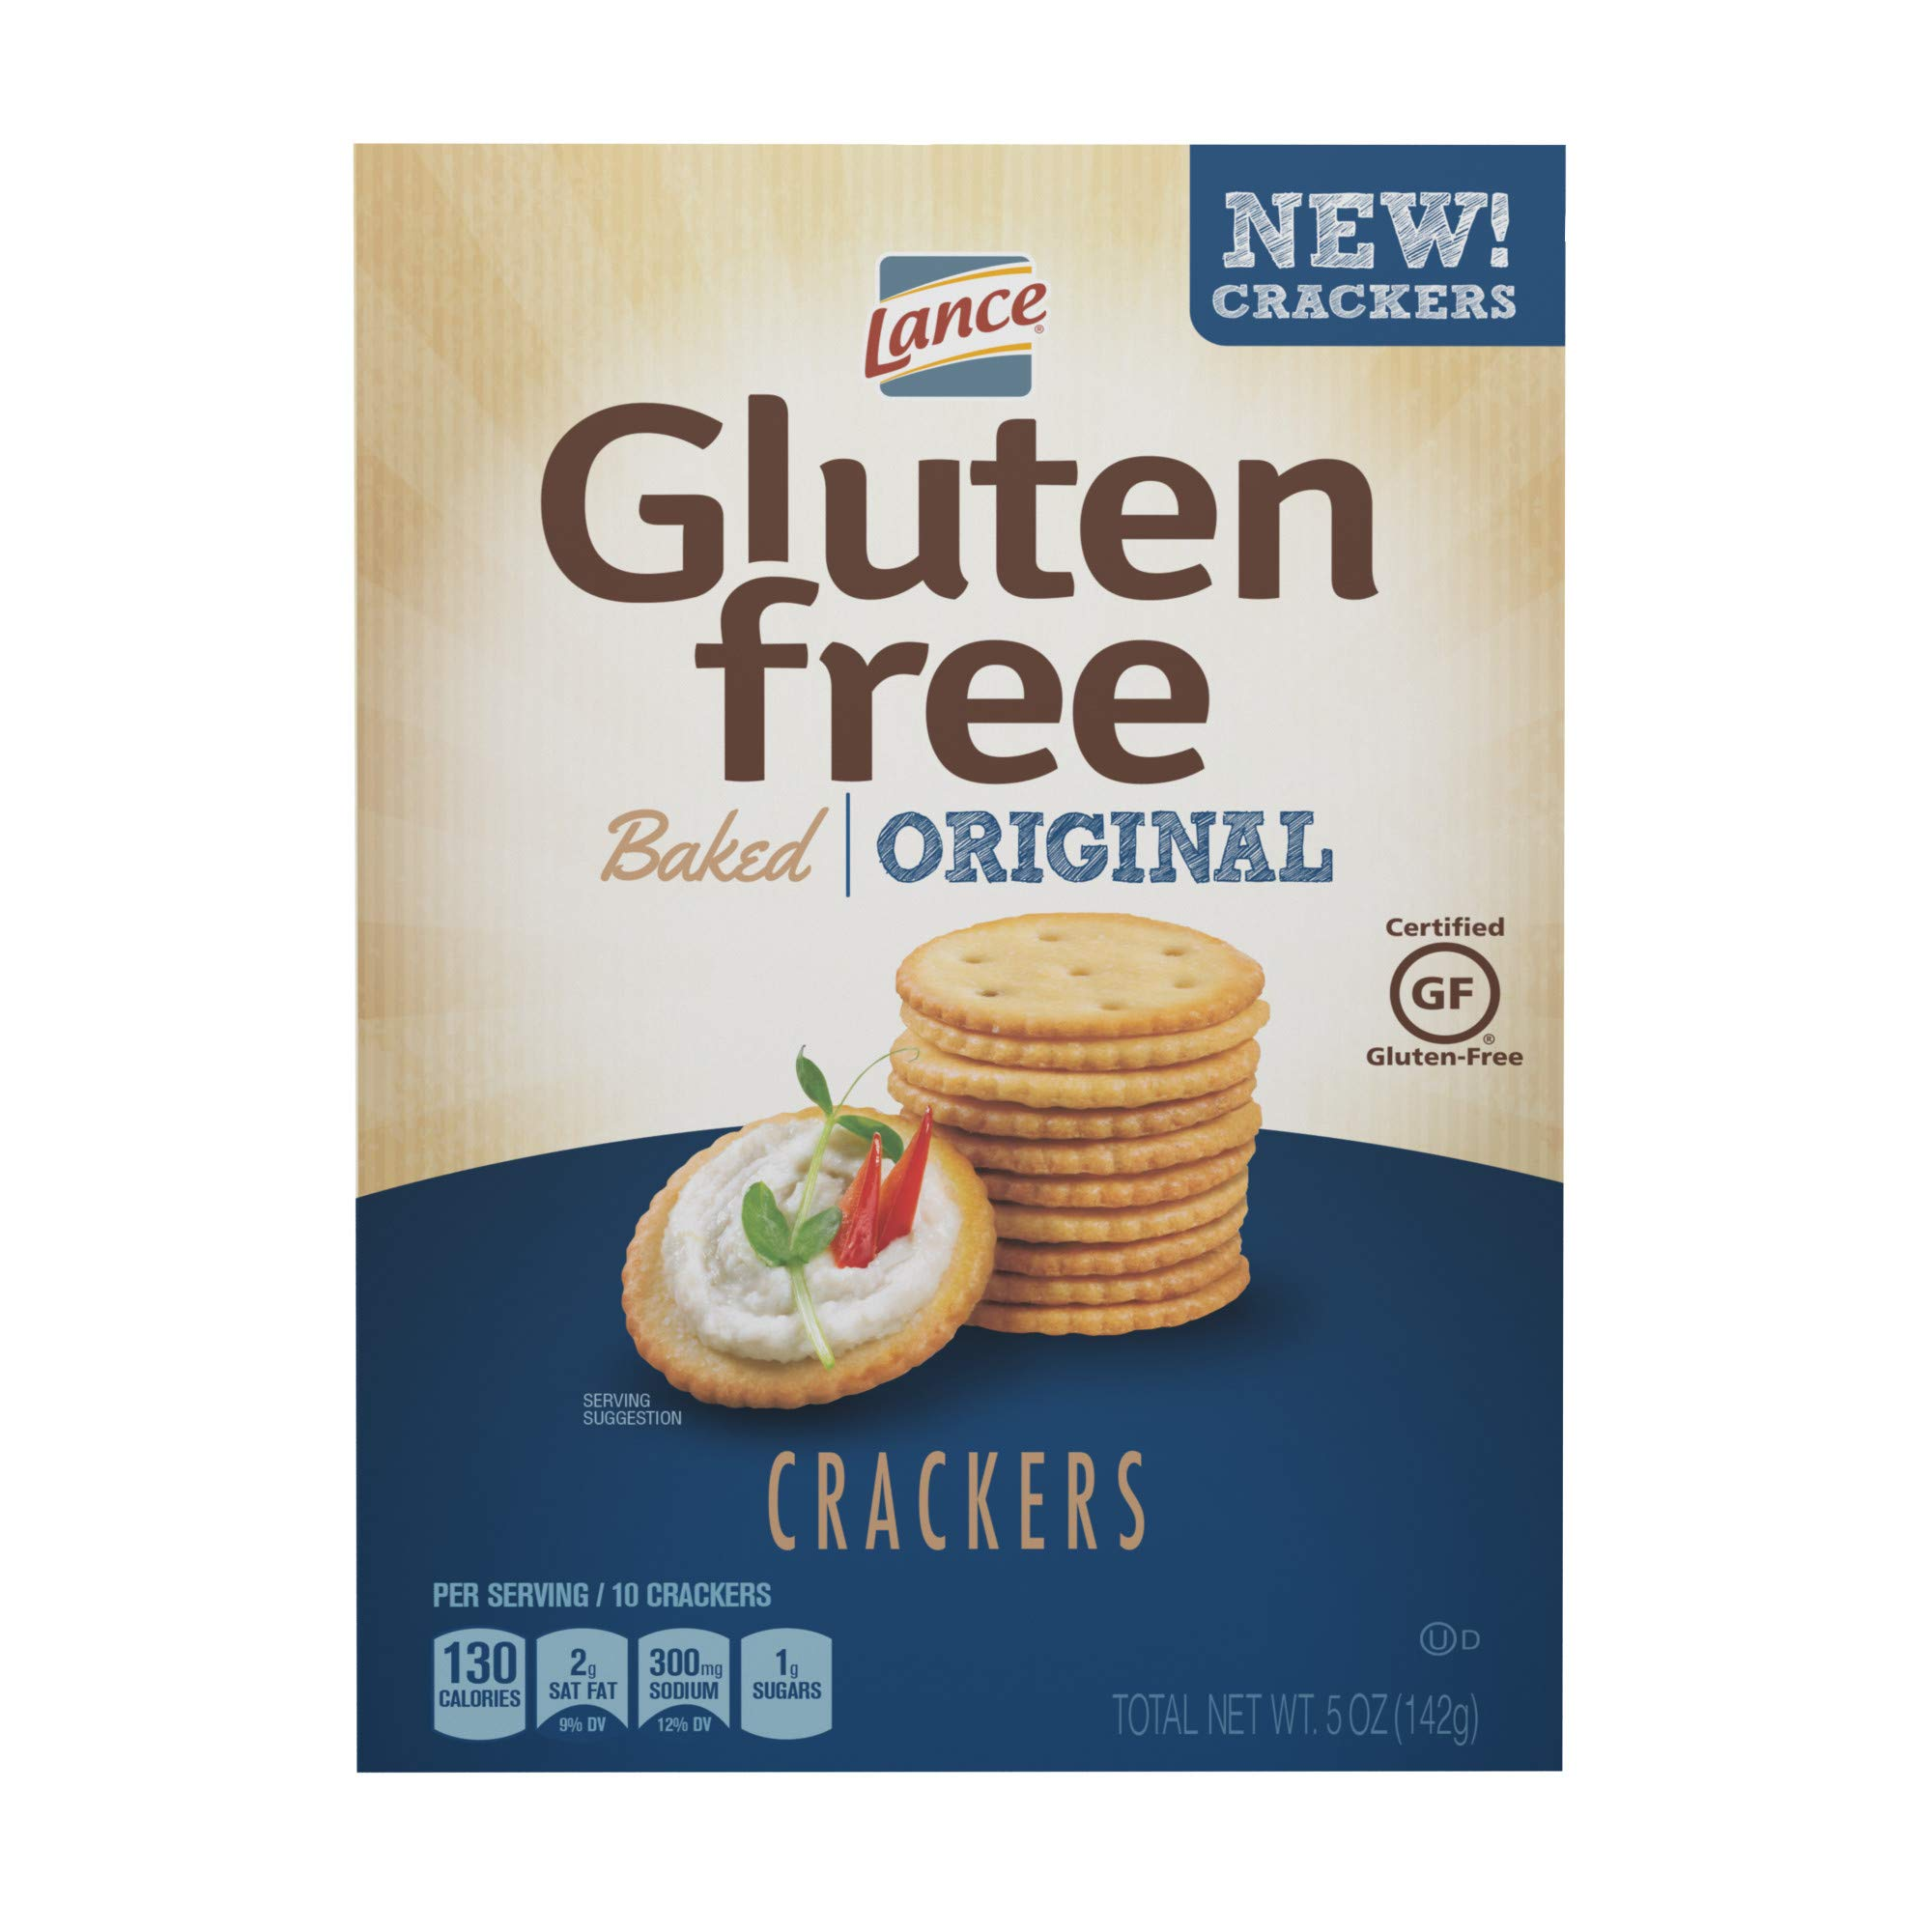 Lance Gluten Free Original Crackers 3 boxes by Lance